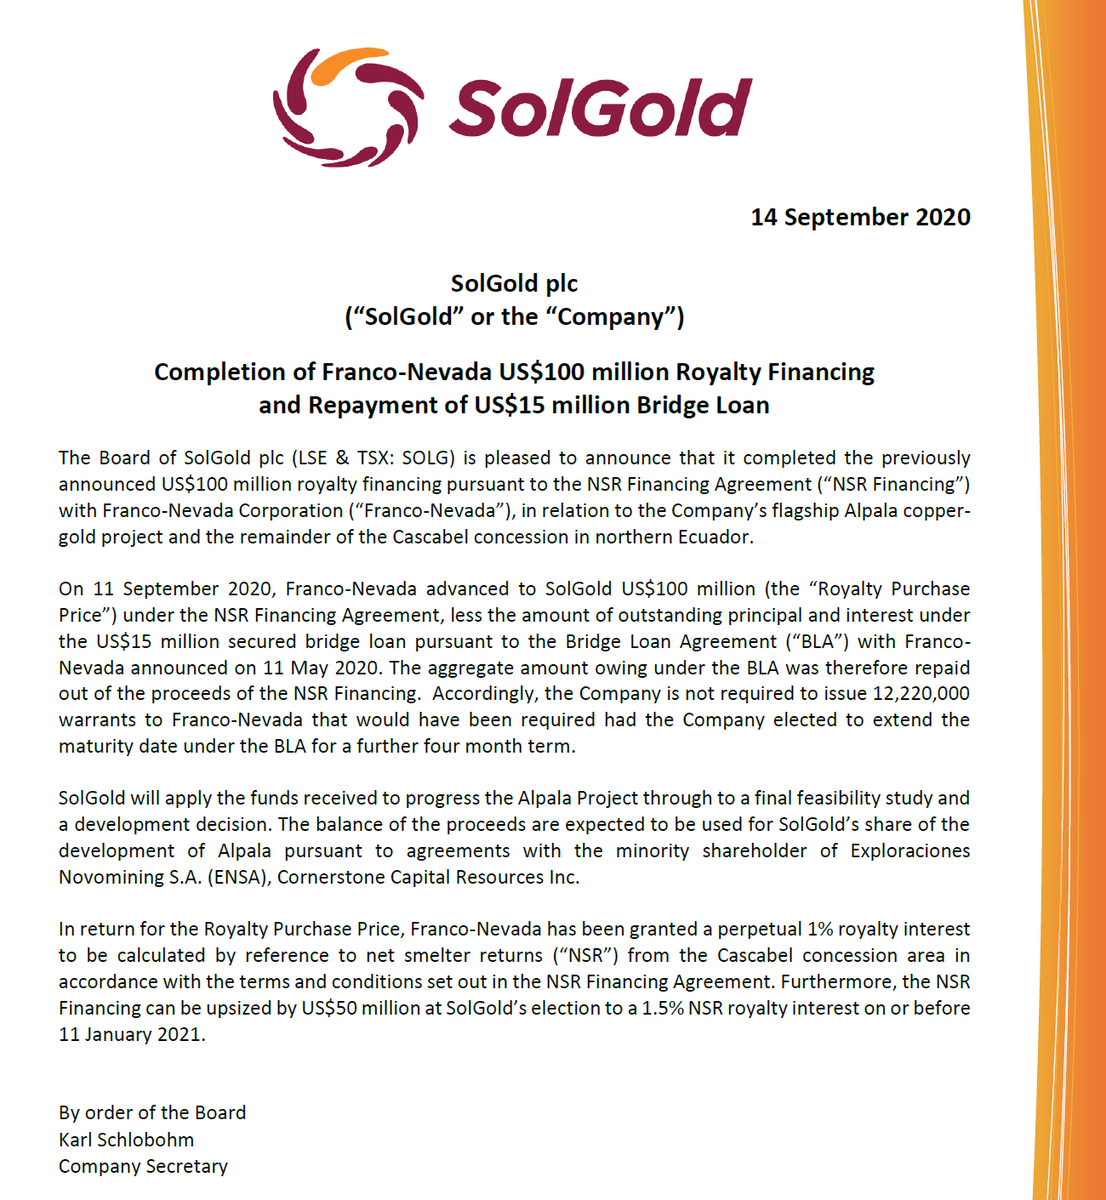 SolGold_plc photo